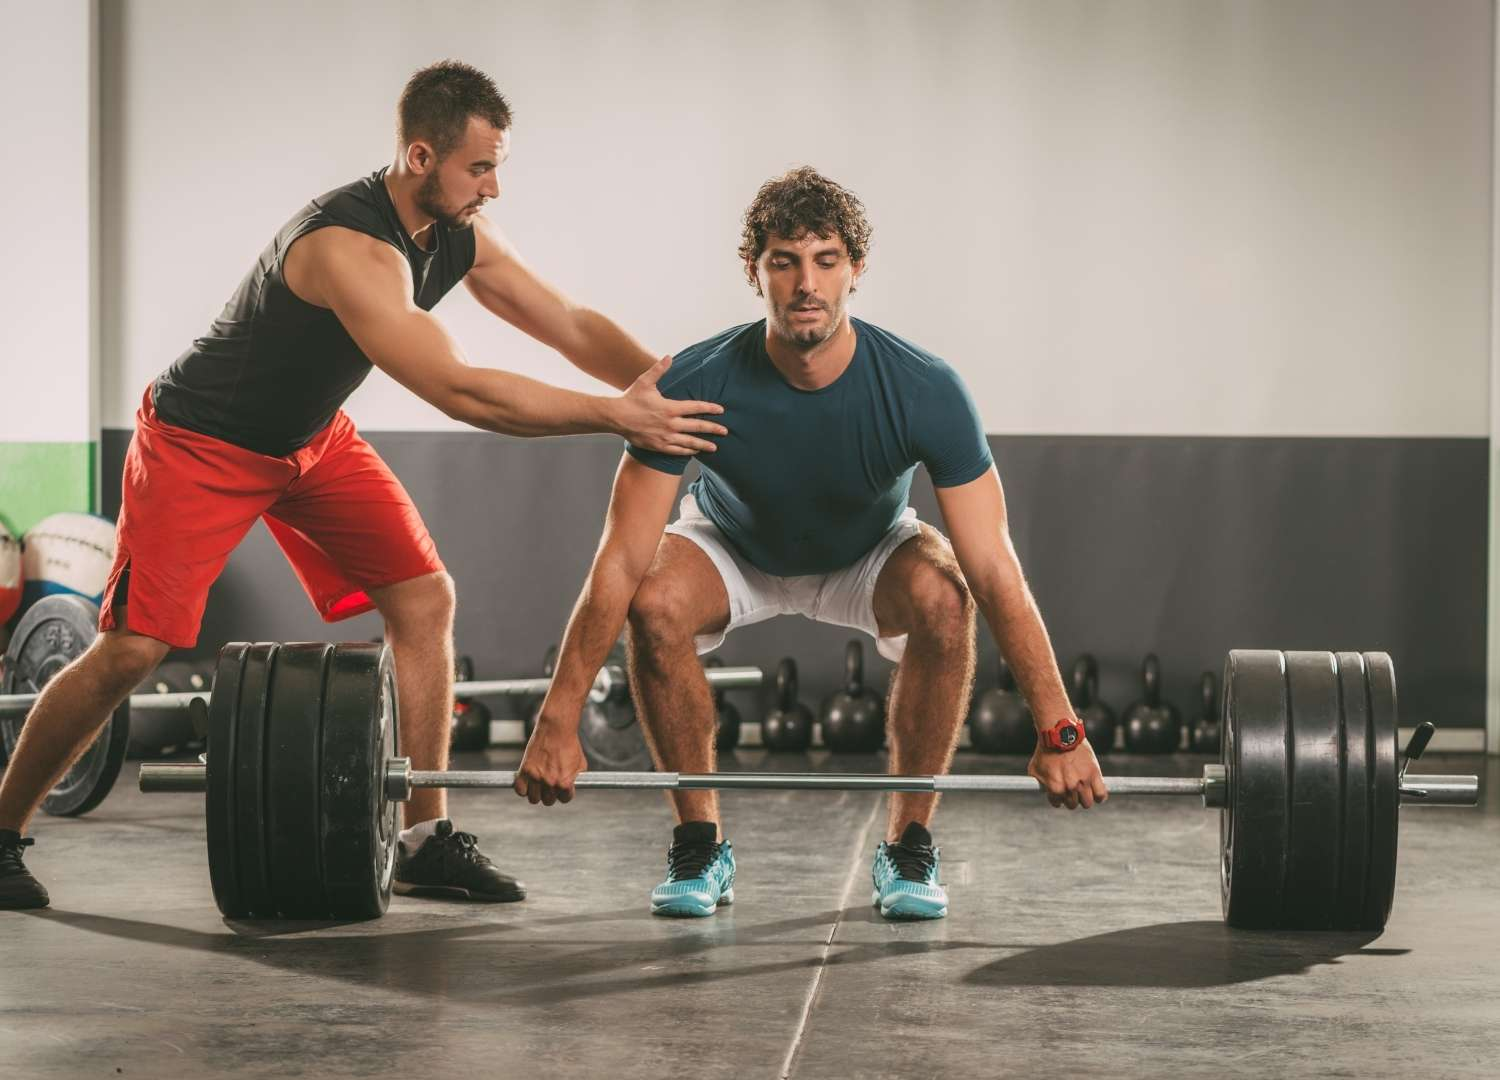 An instructor assisting a man in weight lifting